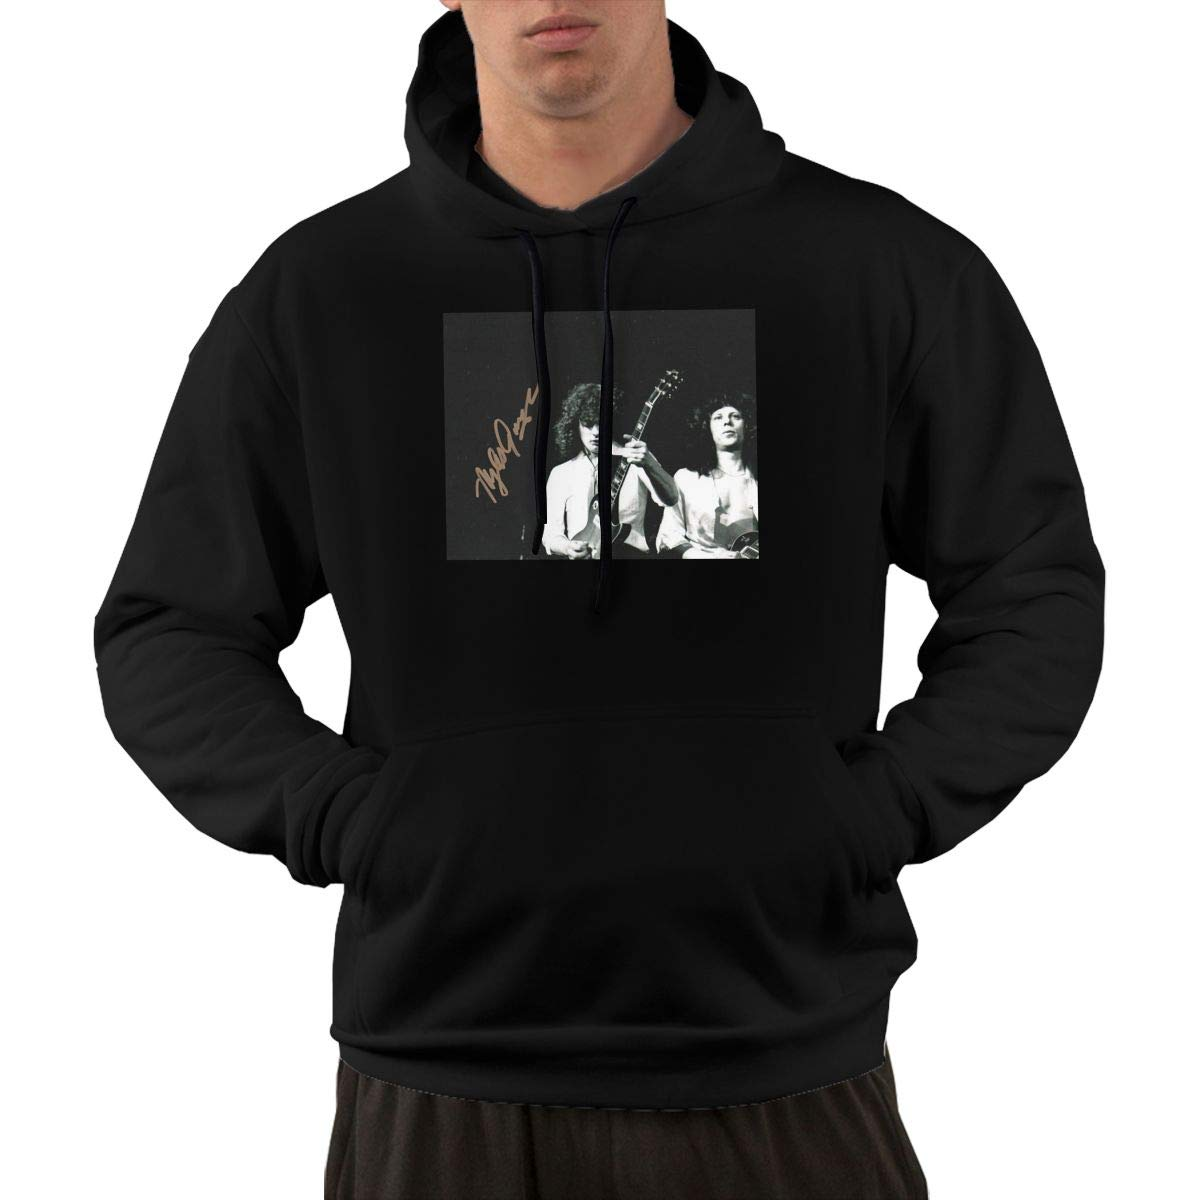 Erman Pullover Casual Black Print April Wine Cool Hooded Shirts With Pocket